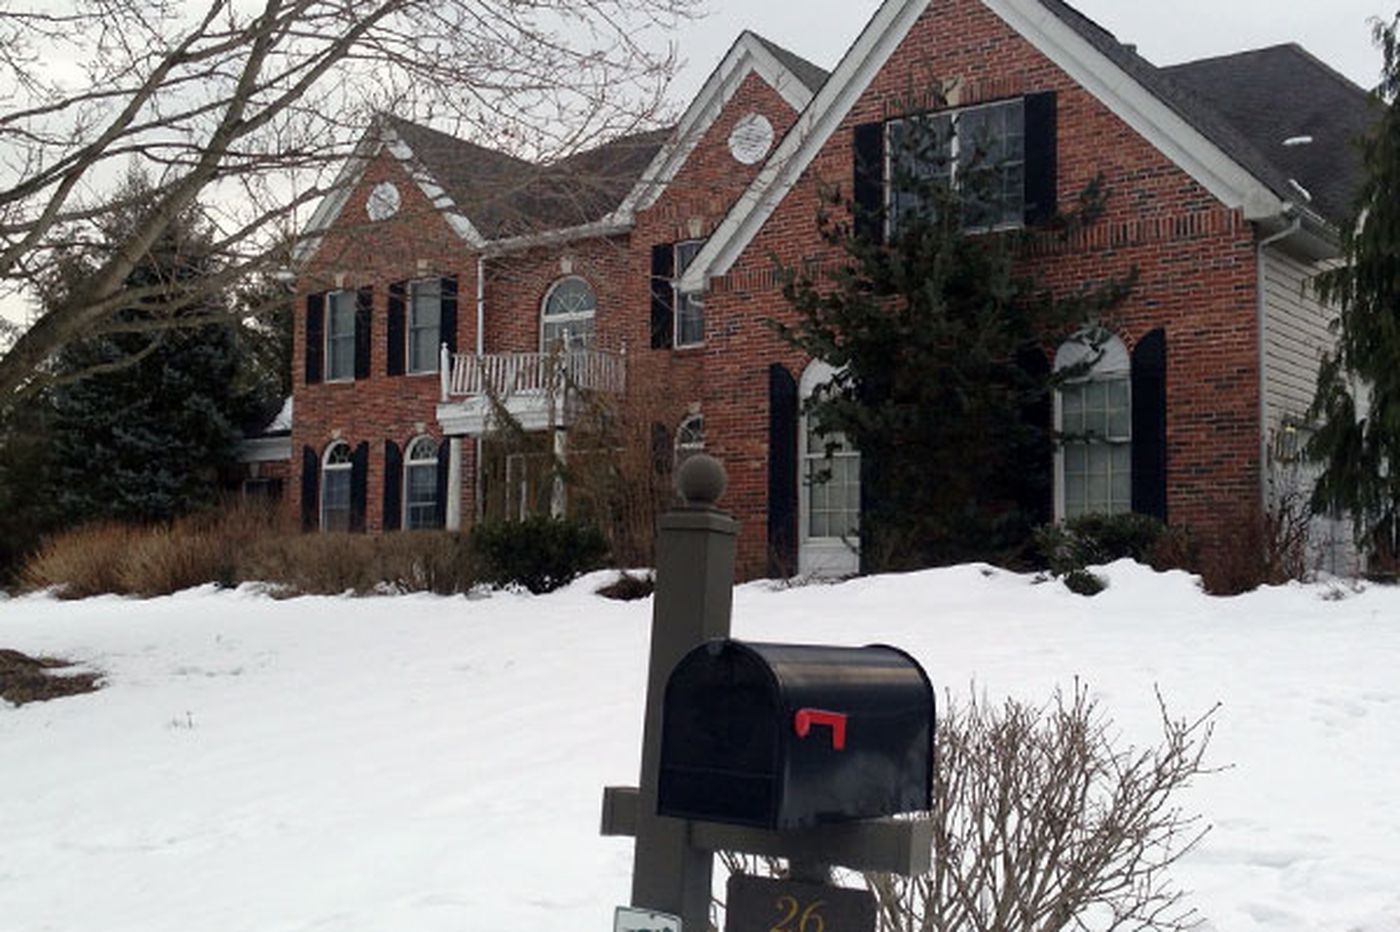 Justice nears - finally - for real estate fraud victims